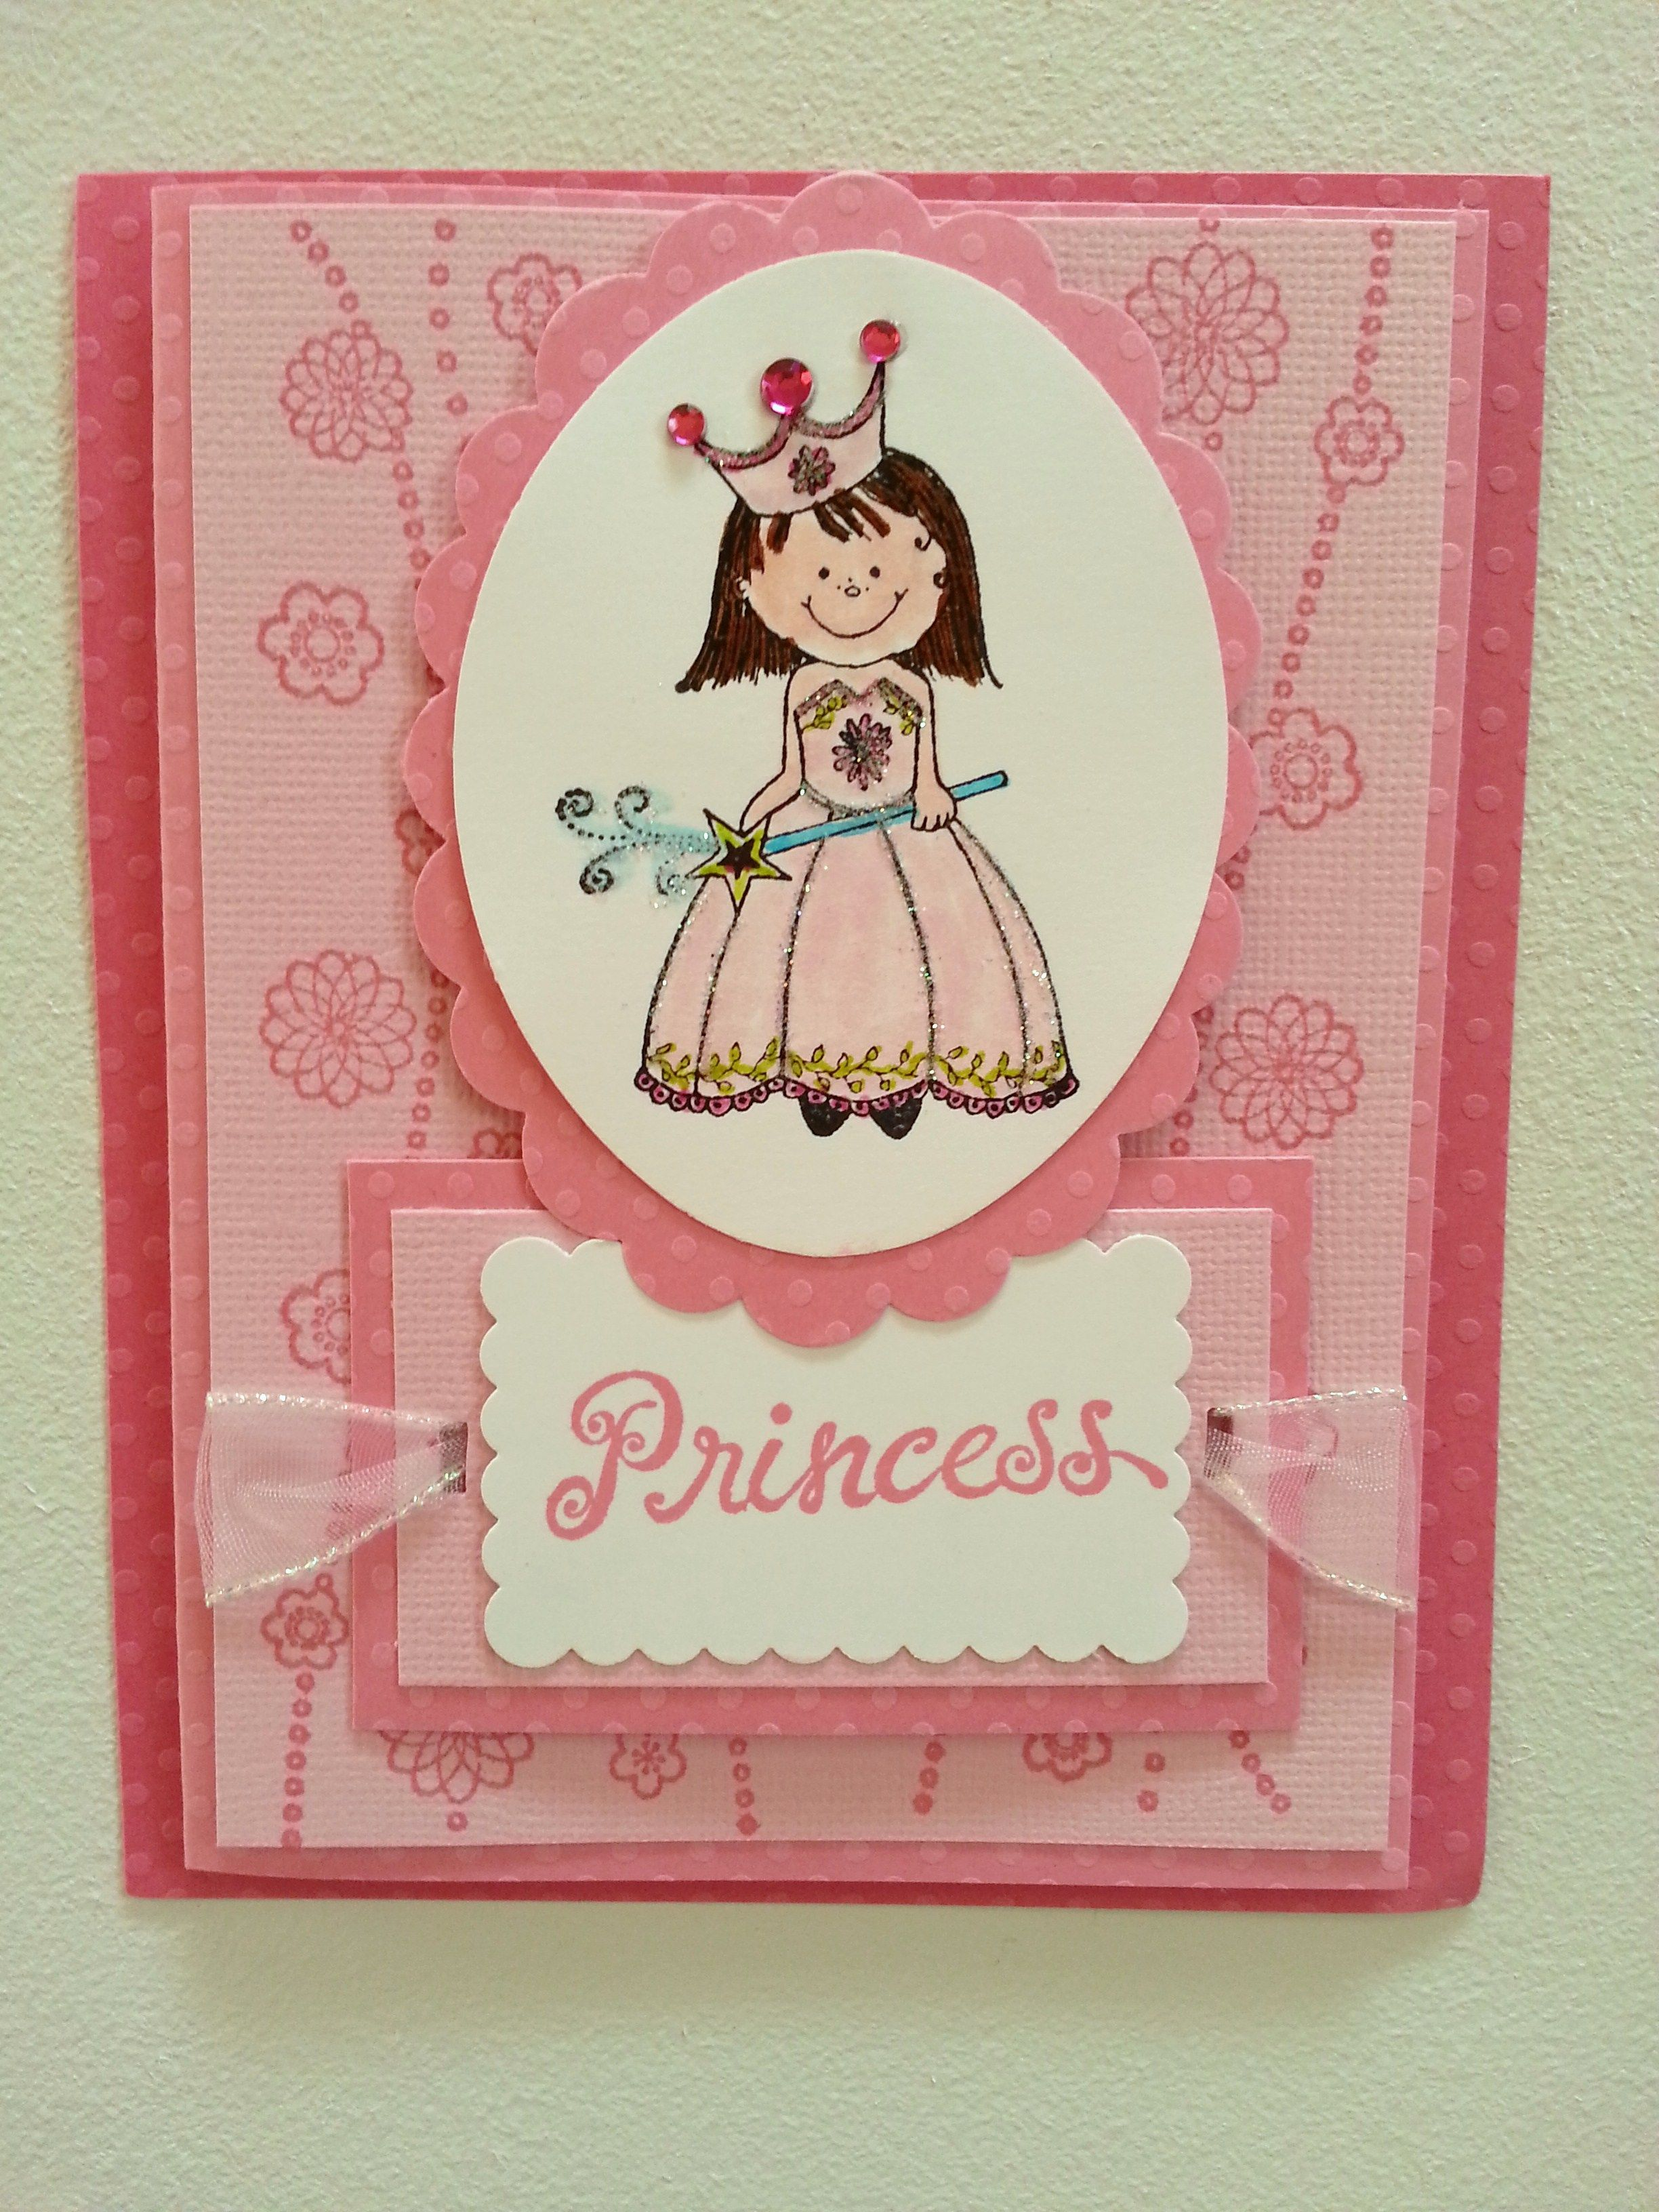 5 1 2 x 4 1 4 handmade birthday card for little girl Princess